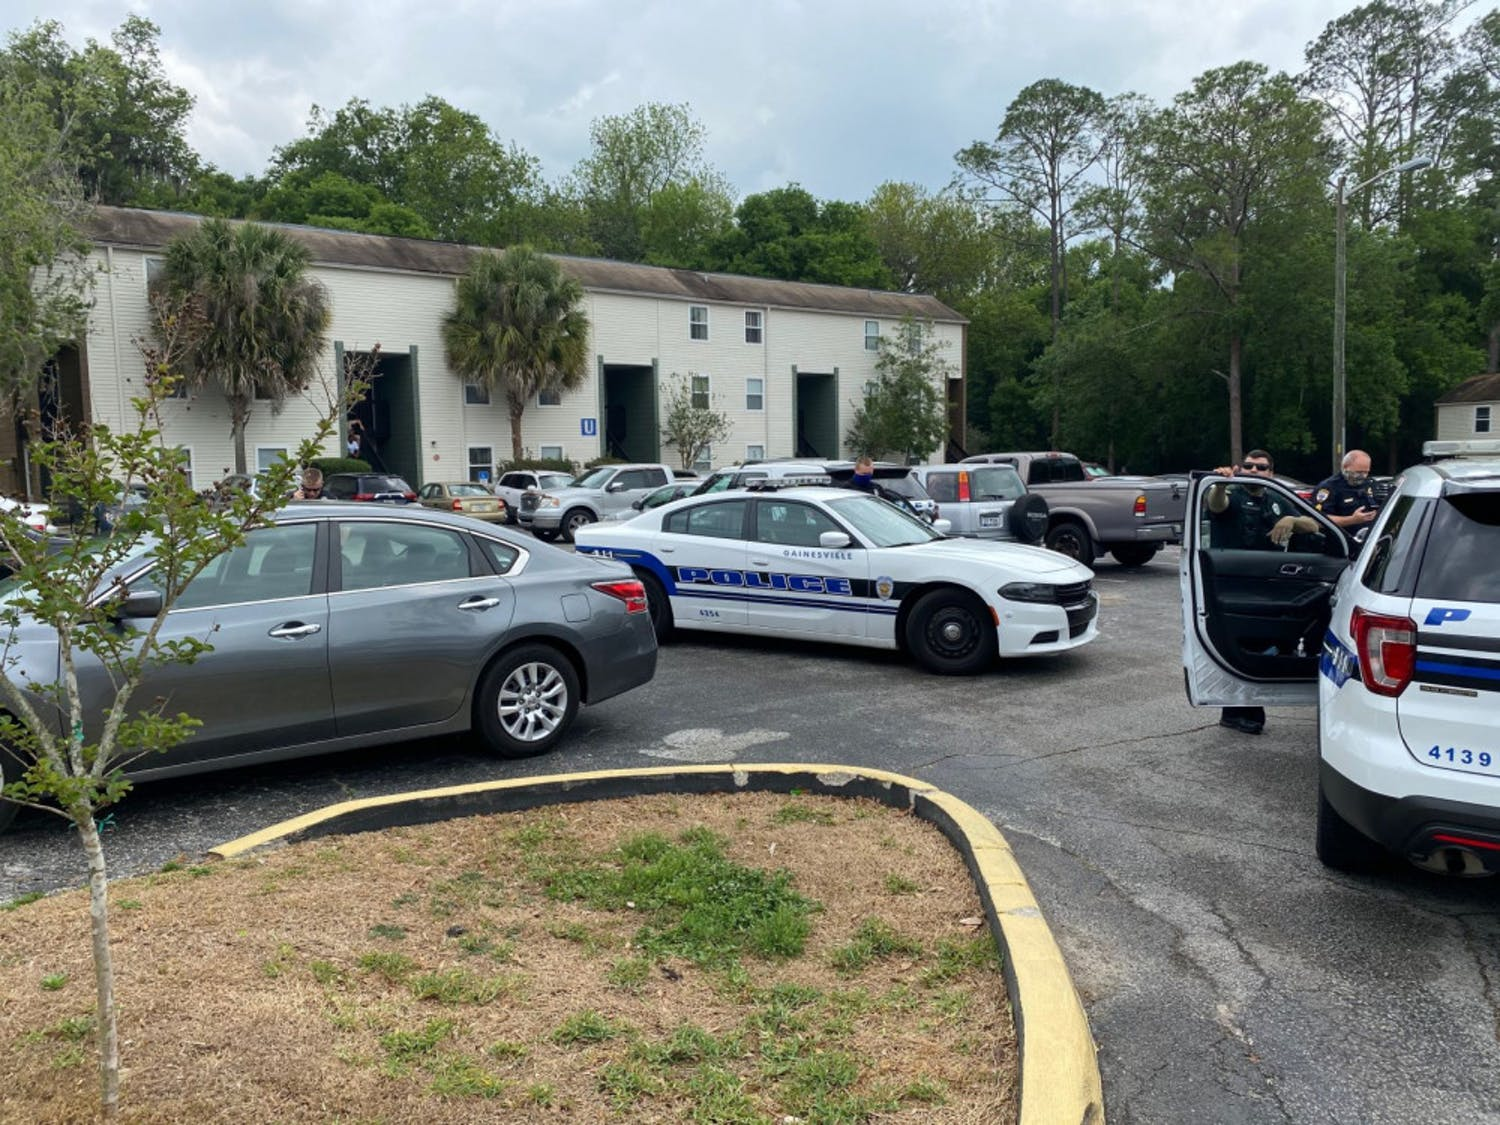 Police were called to the Bivens Cove apartment complex at 12:31 p.m. on Monday.